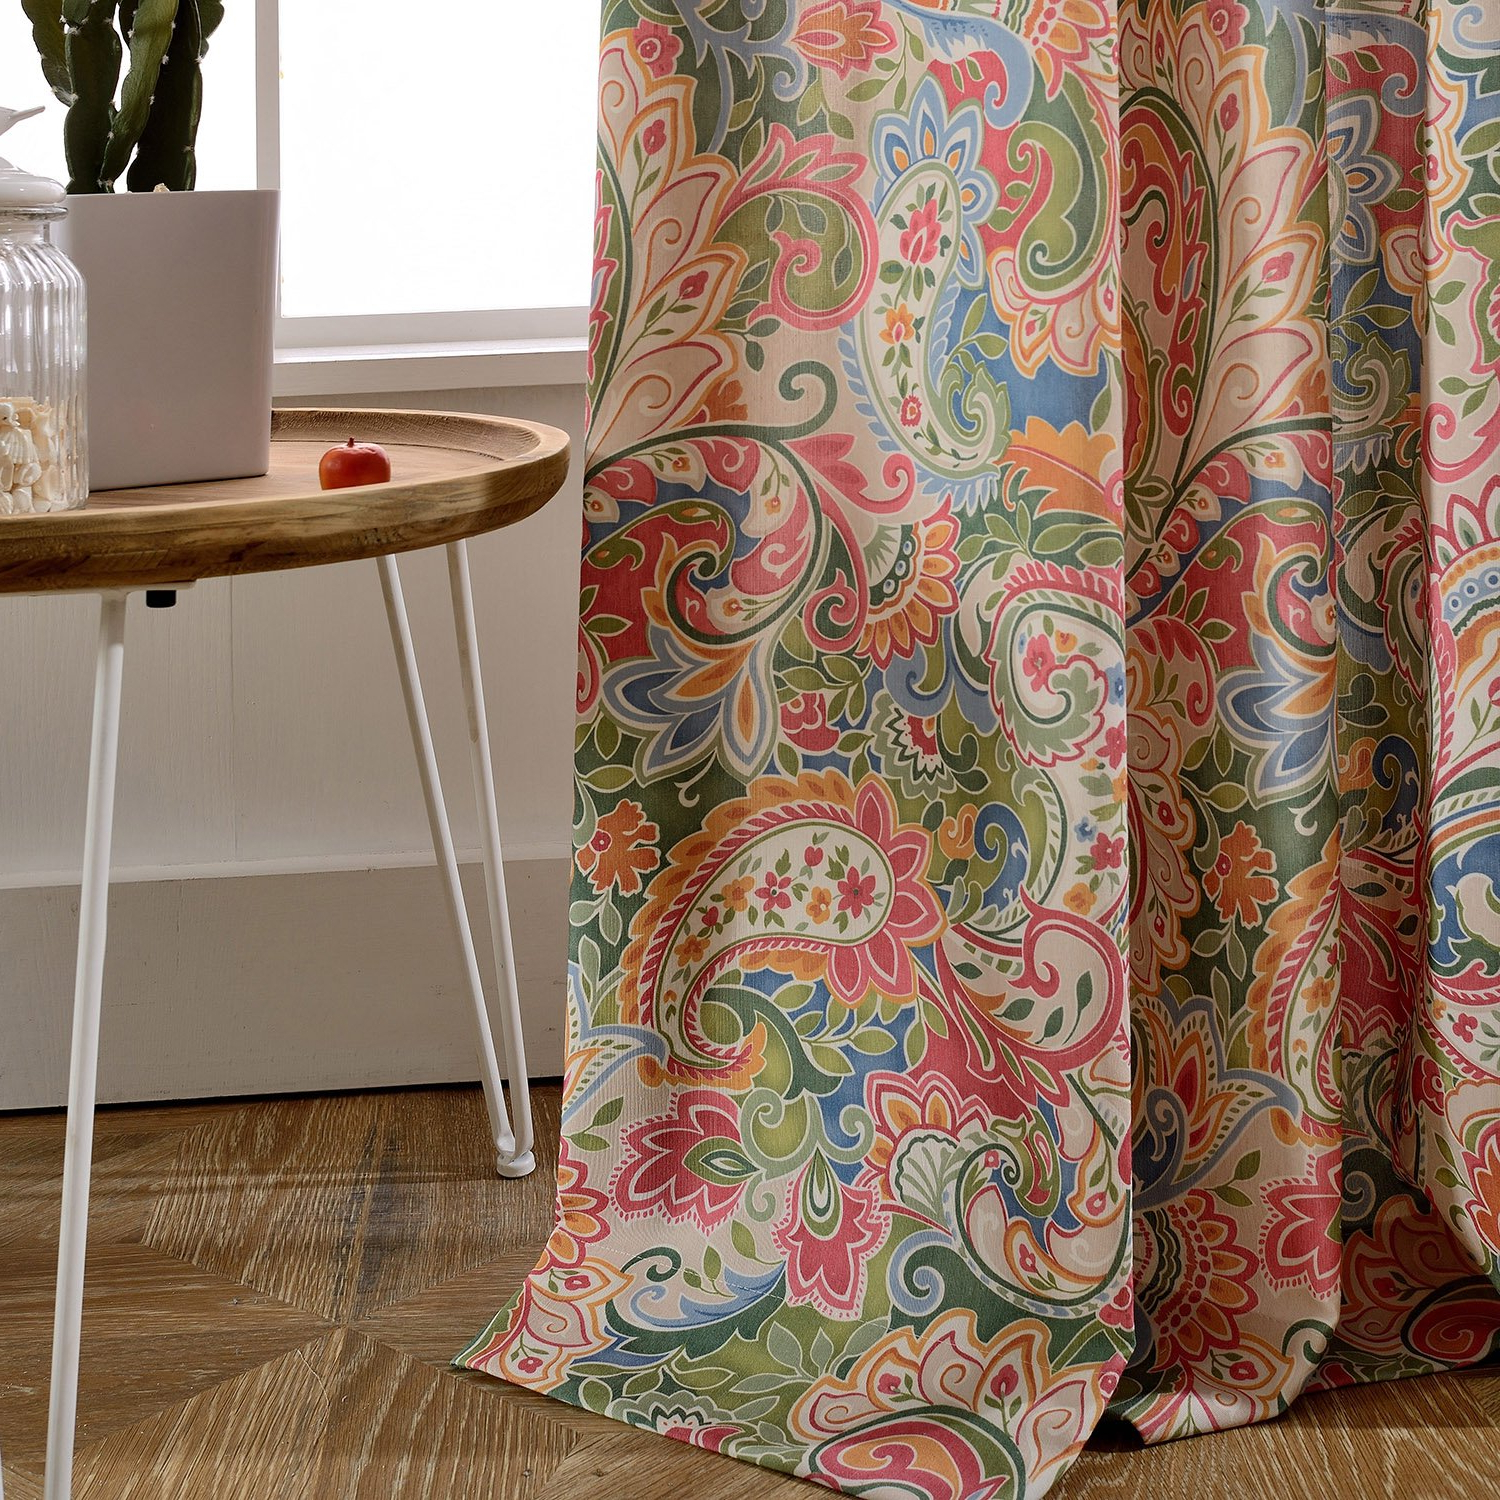 Polyester Cotton Colourful Paisley Curtain – Koting 1 Panel Retro Patterned Decro Curtain Grommet Top 50W84L Inch In Favorite Lambrequin Boho Paisley Cotton Curtain Panels (View 19 of 20)